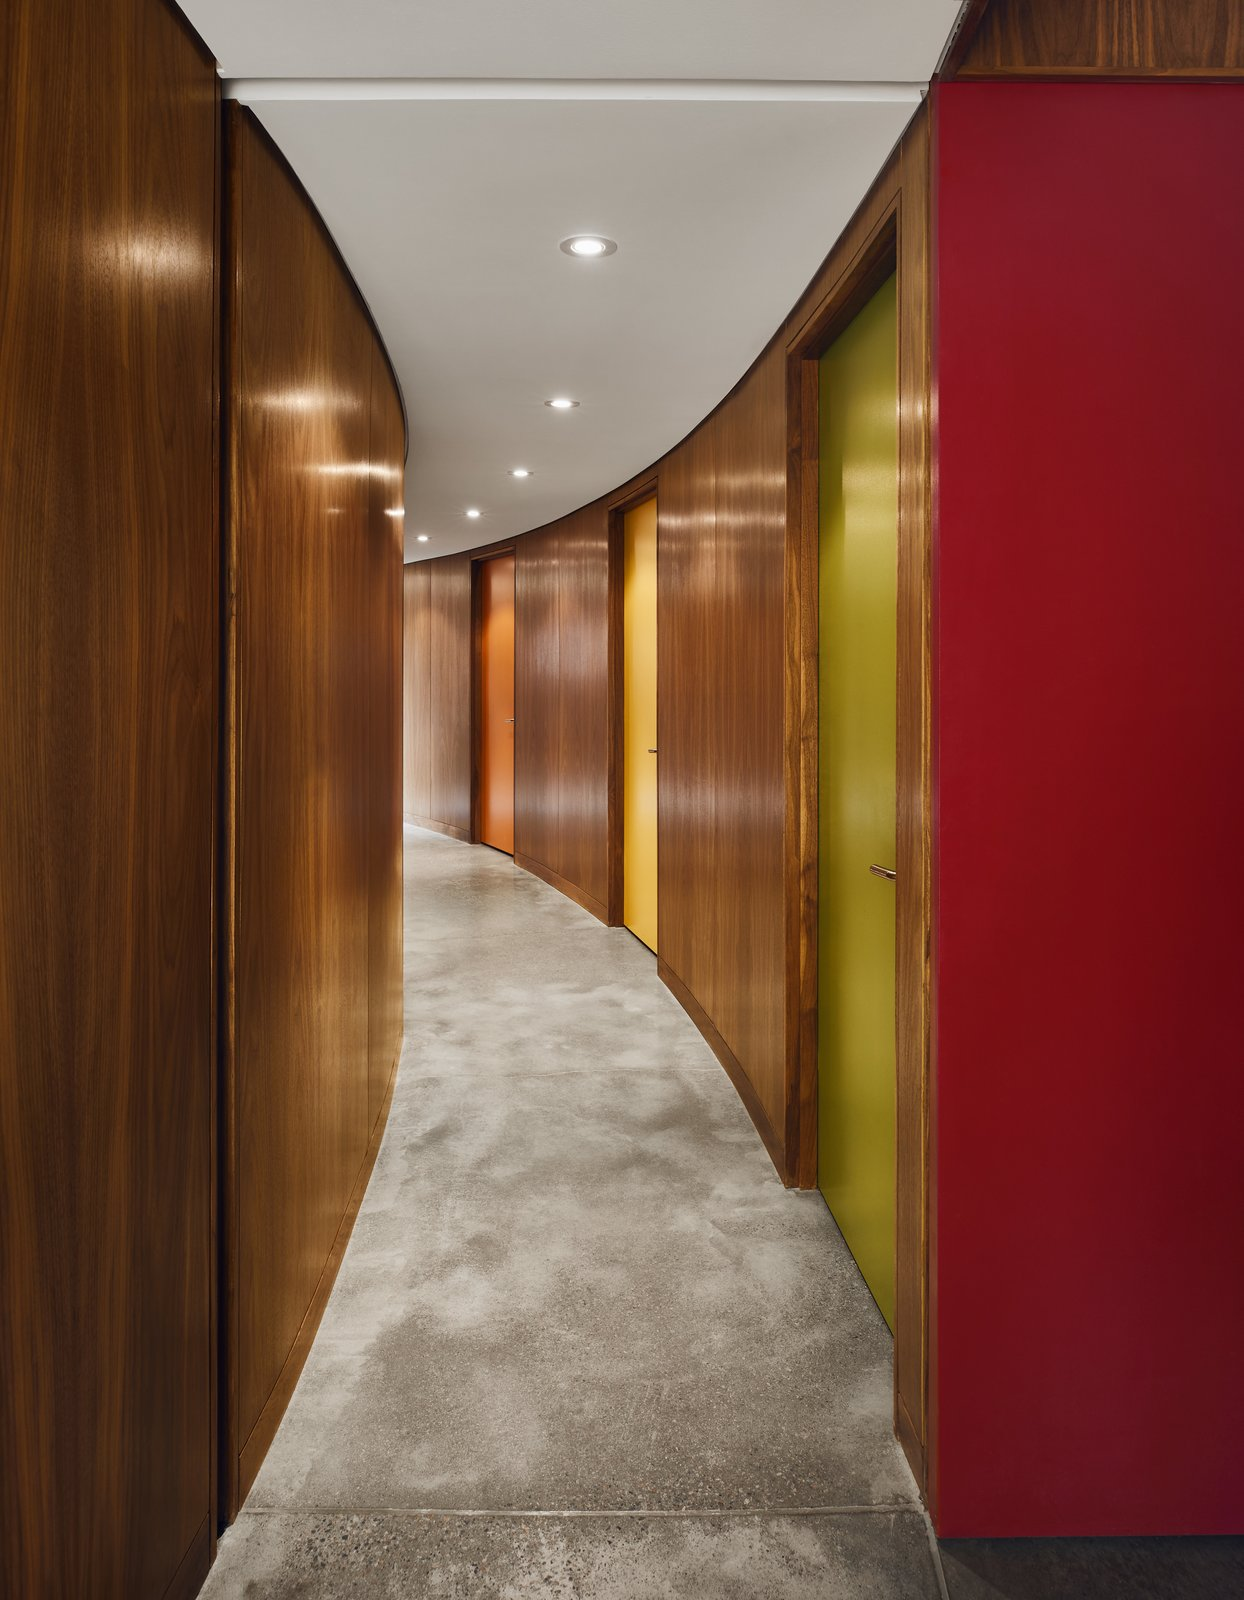 Hallway and Concrete Floor  Photos from A Curved House in Ontario Bends 100 Degrees for Forest Views